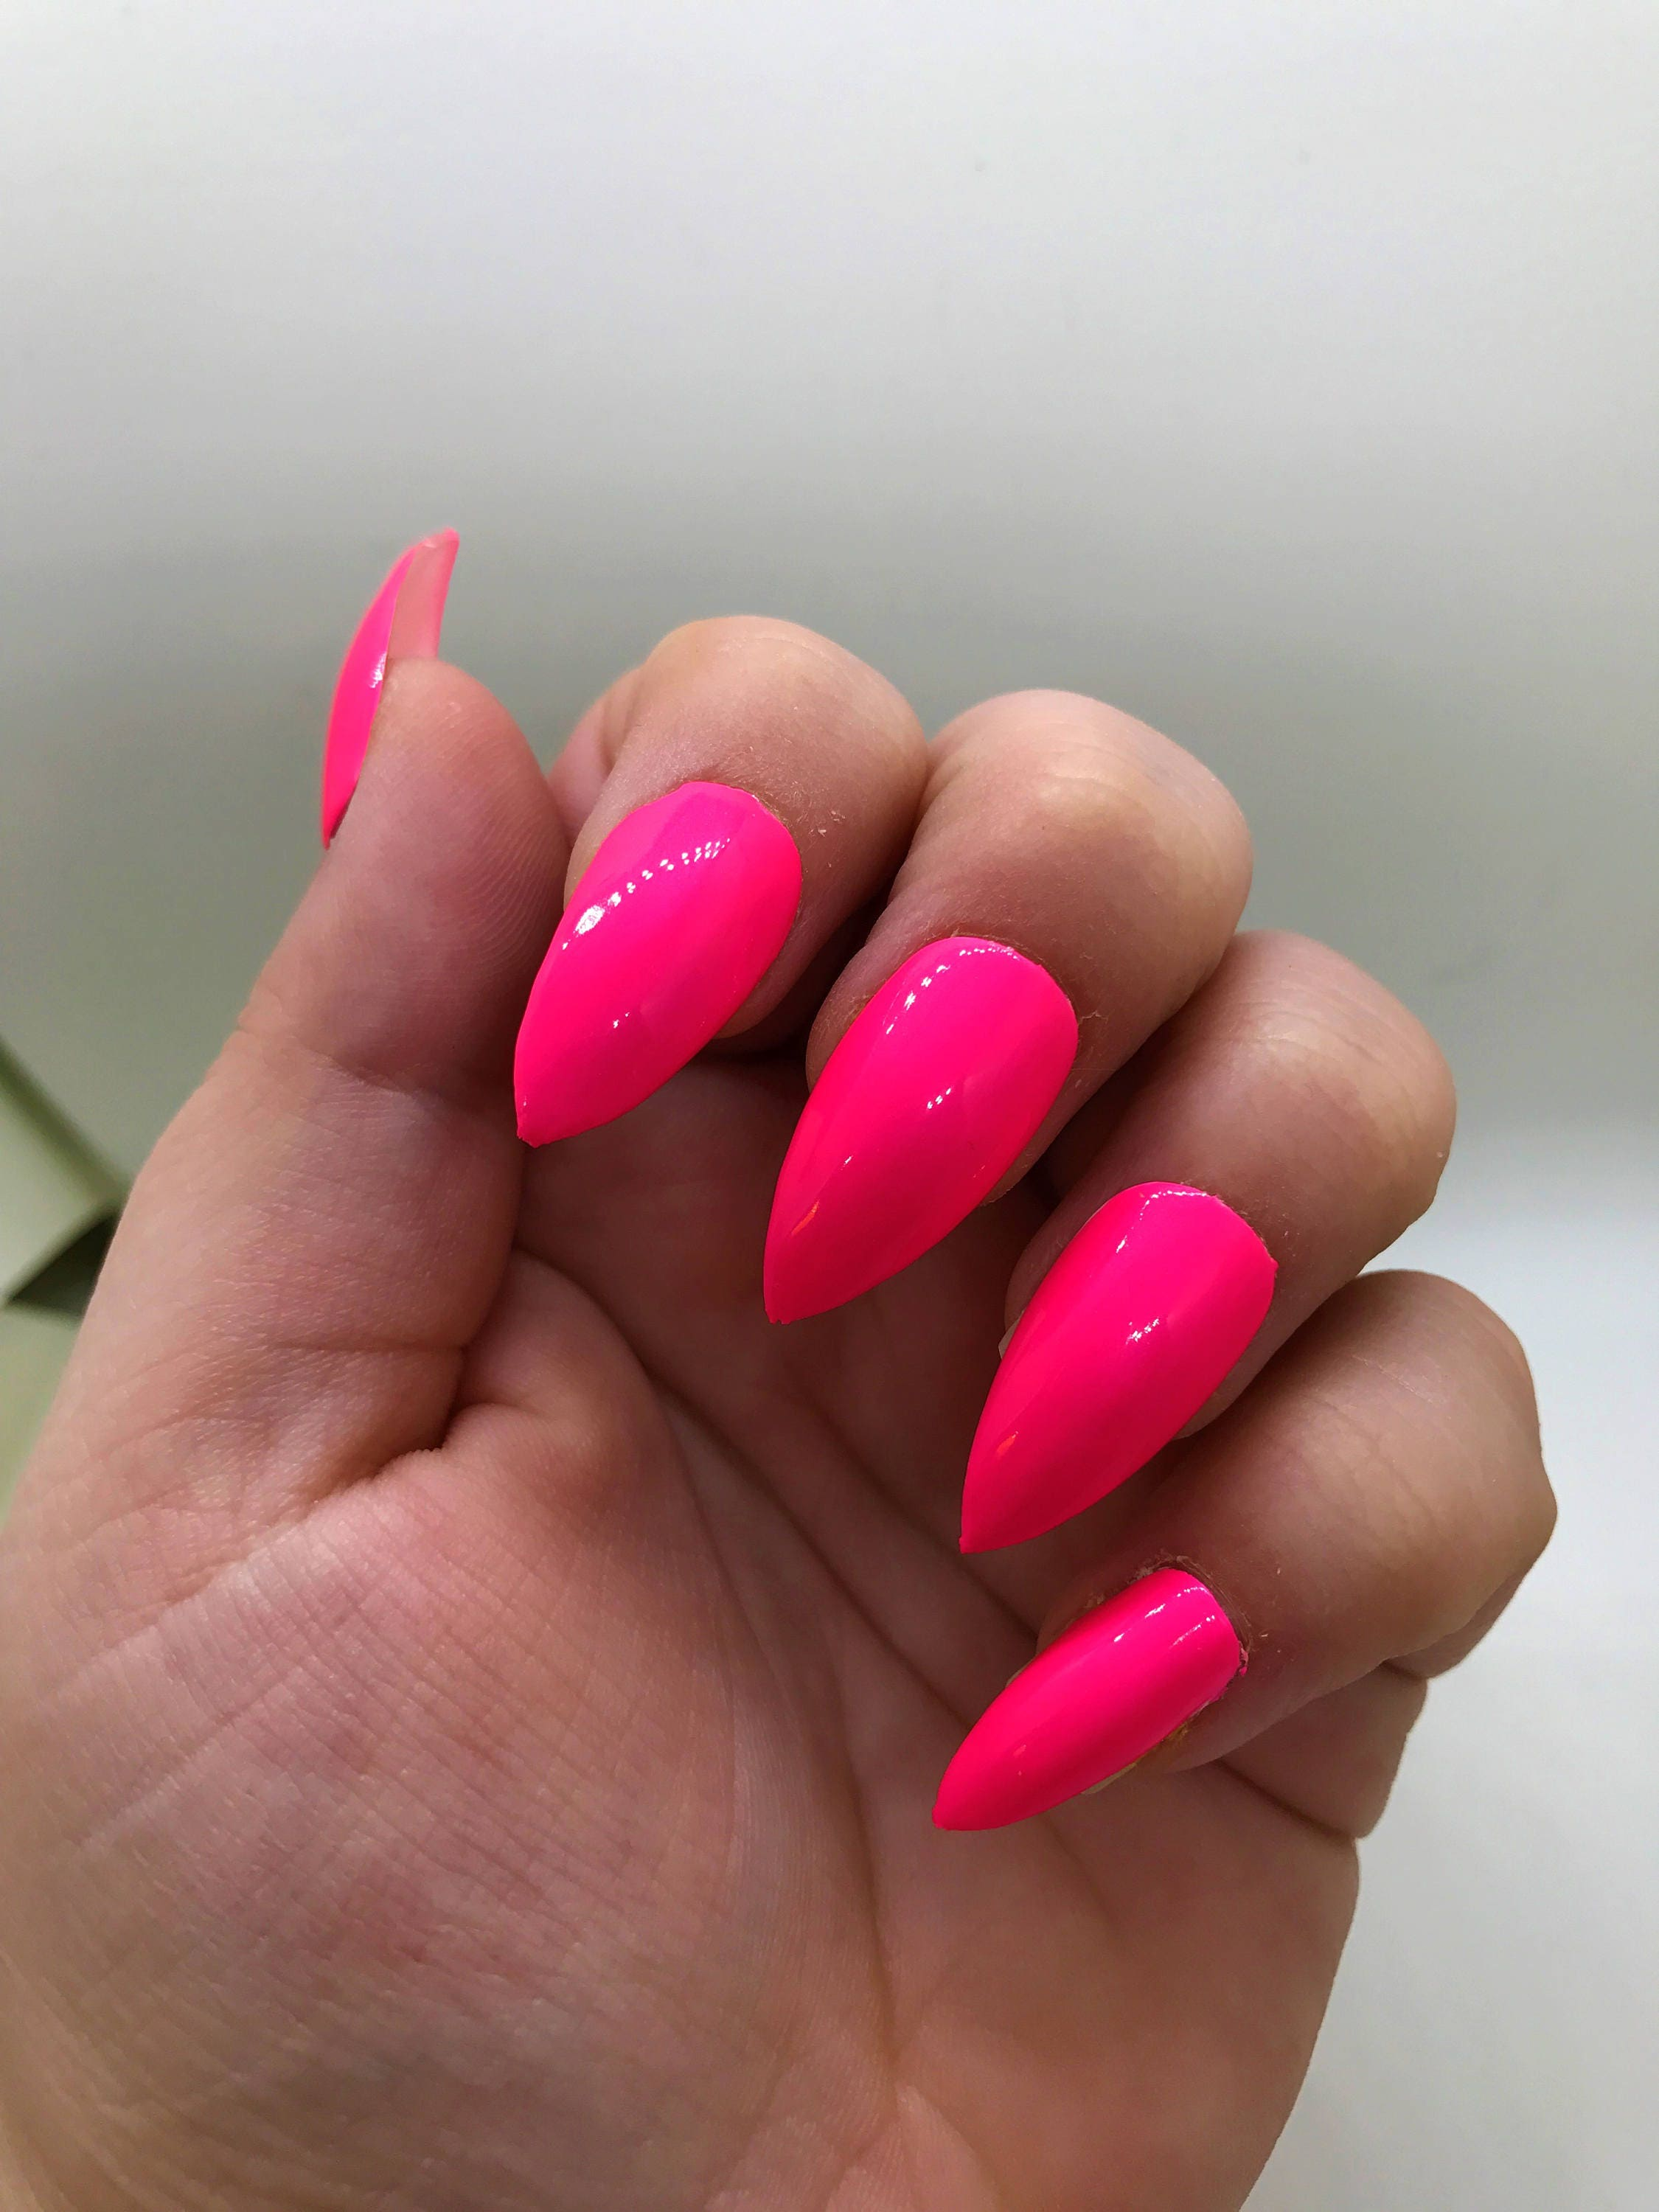 Hot Pink Fake Nails | Neon Pink Nails | Press On | Glue On Nails ...